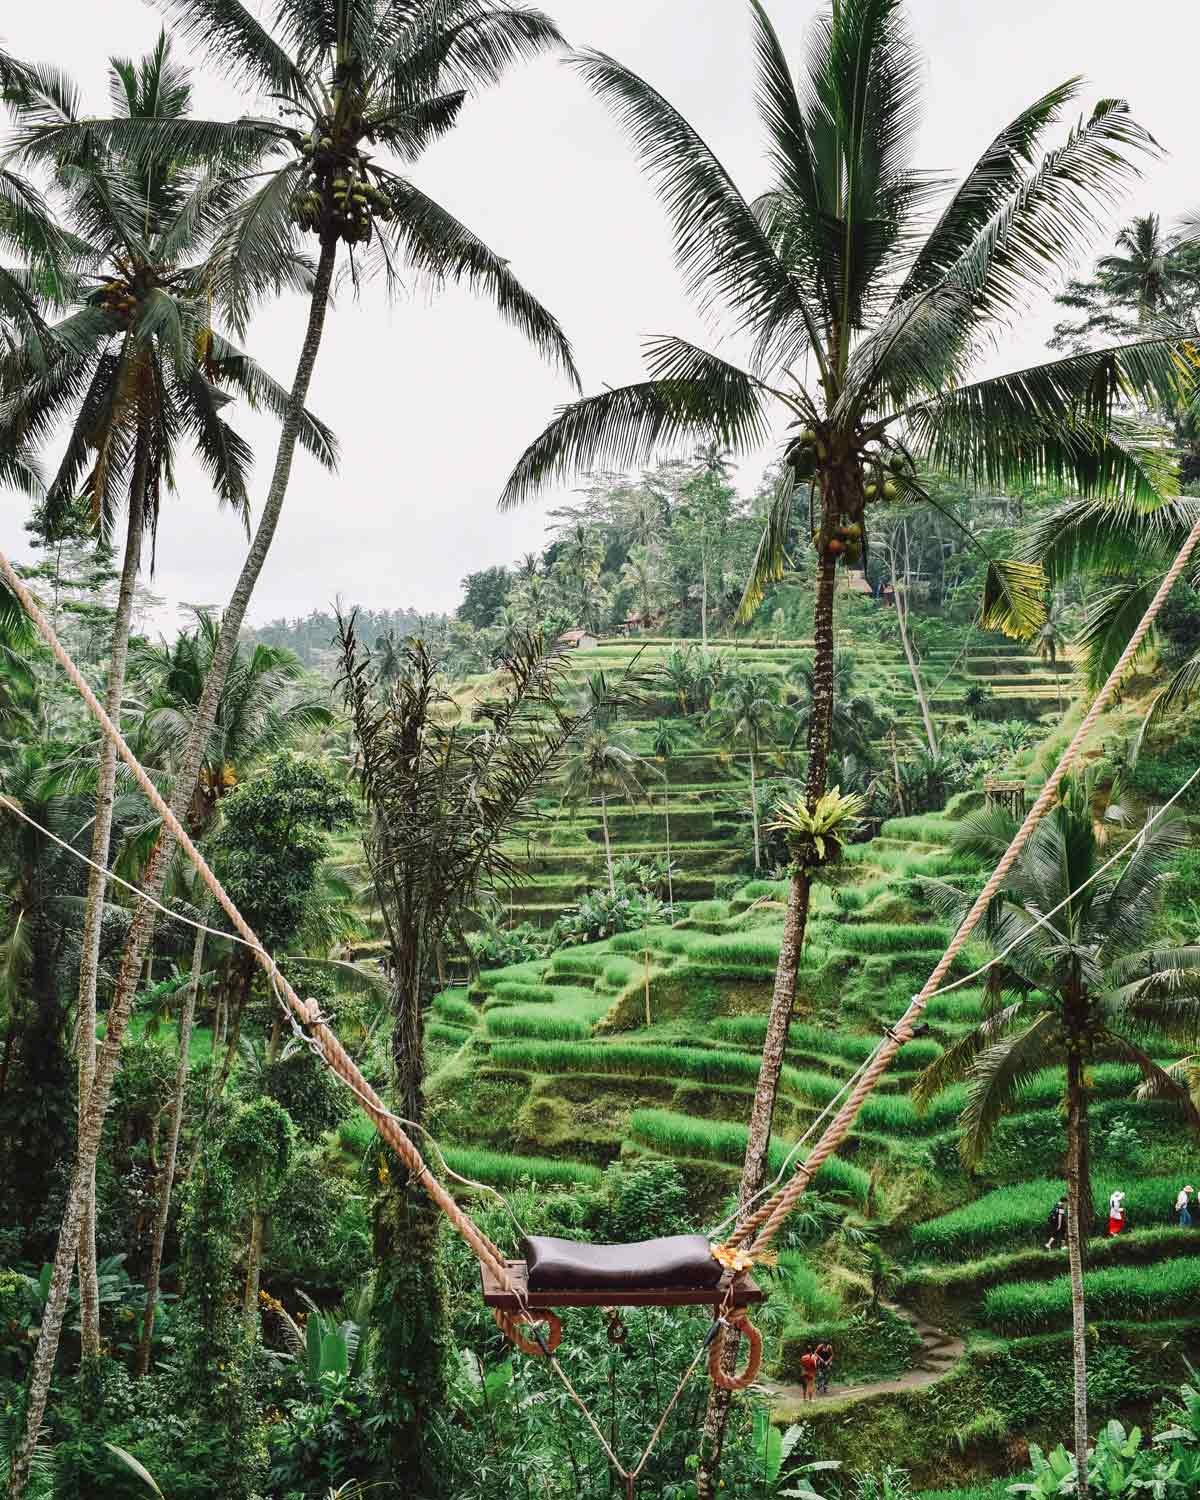 Ubud's famous rice terraces. Photo: Dave Weatherall via Unsplash.